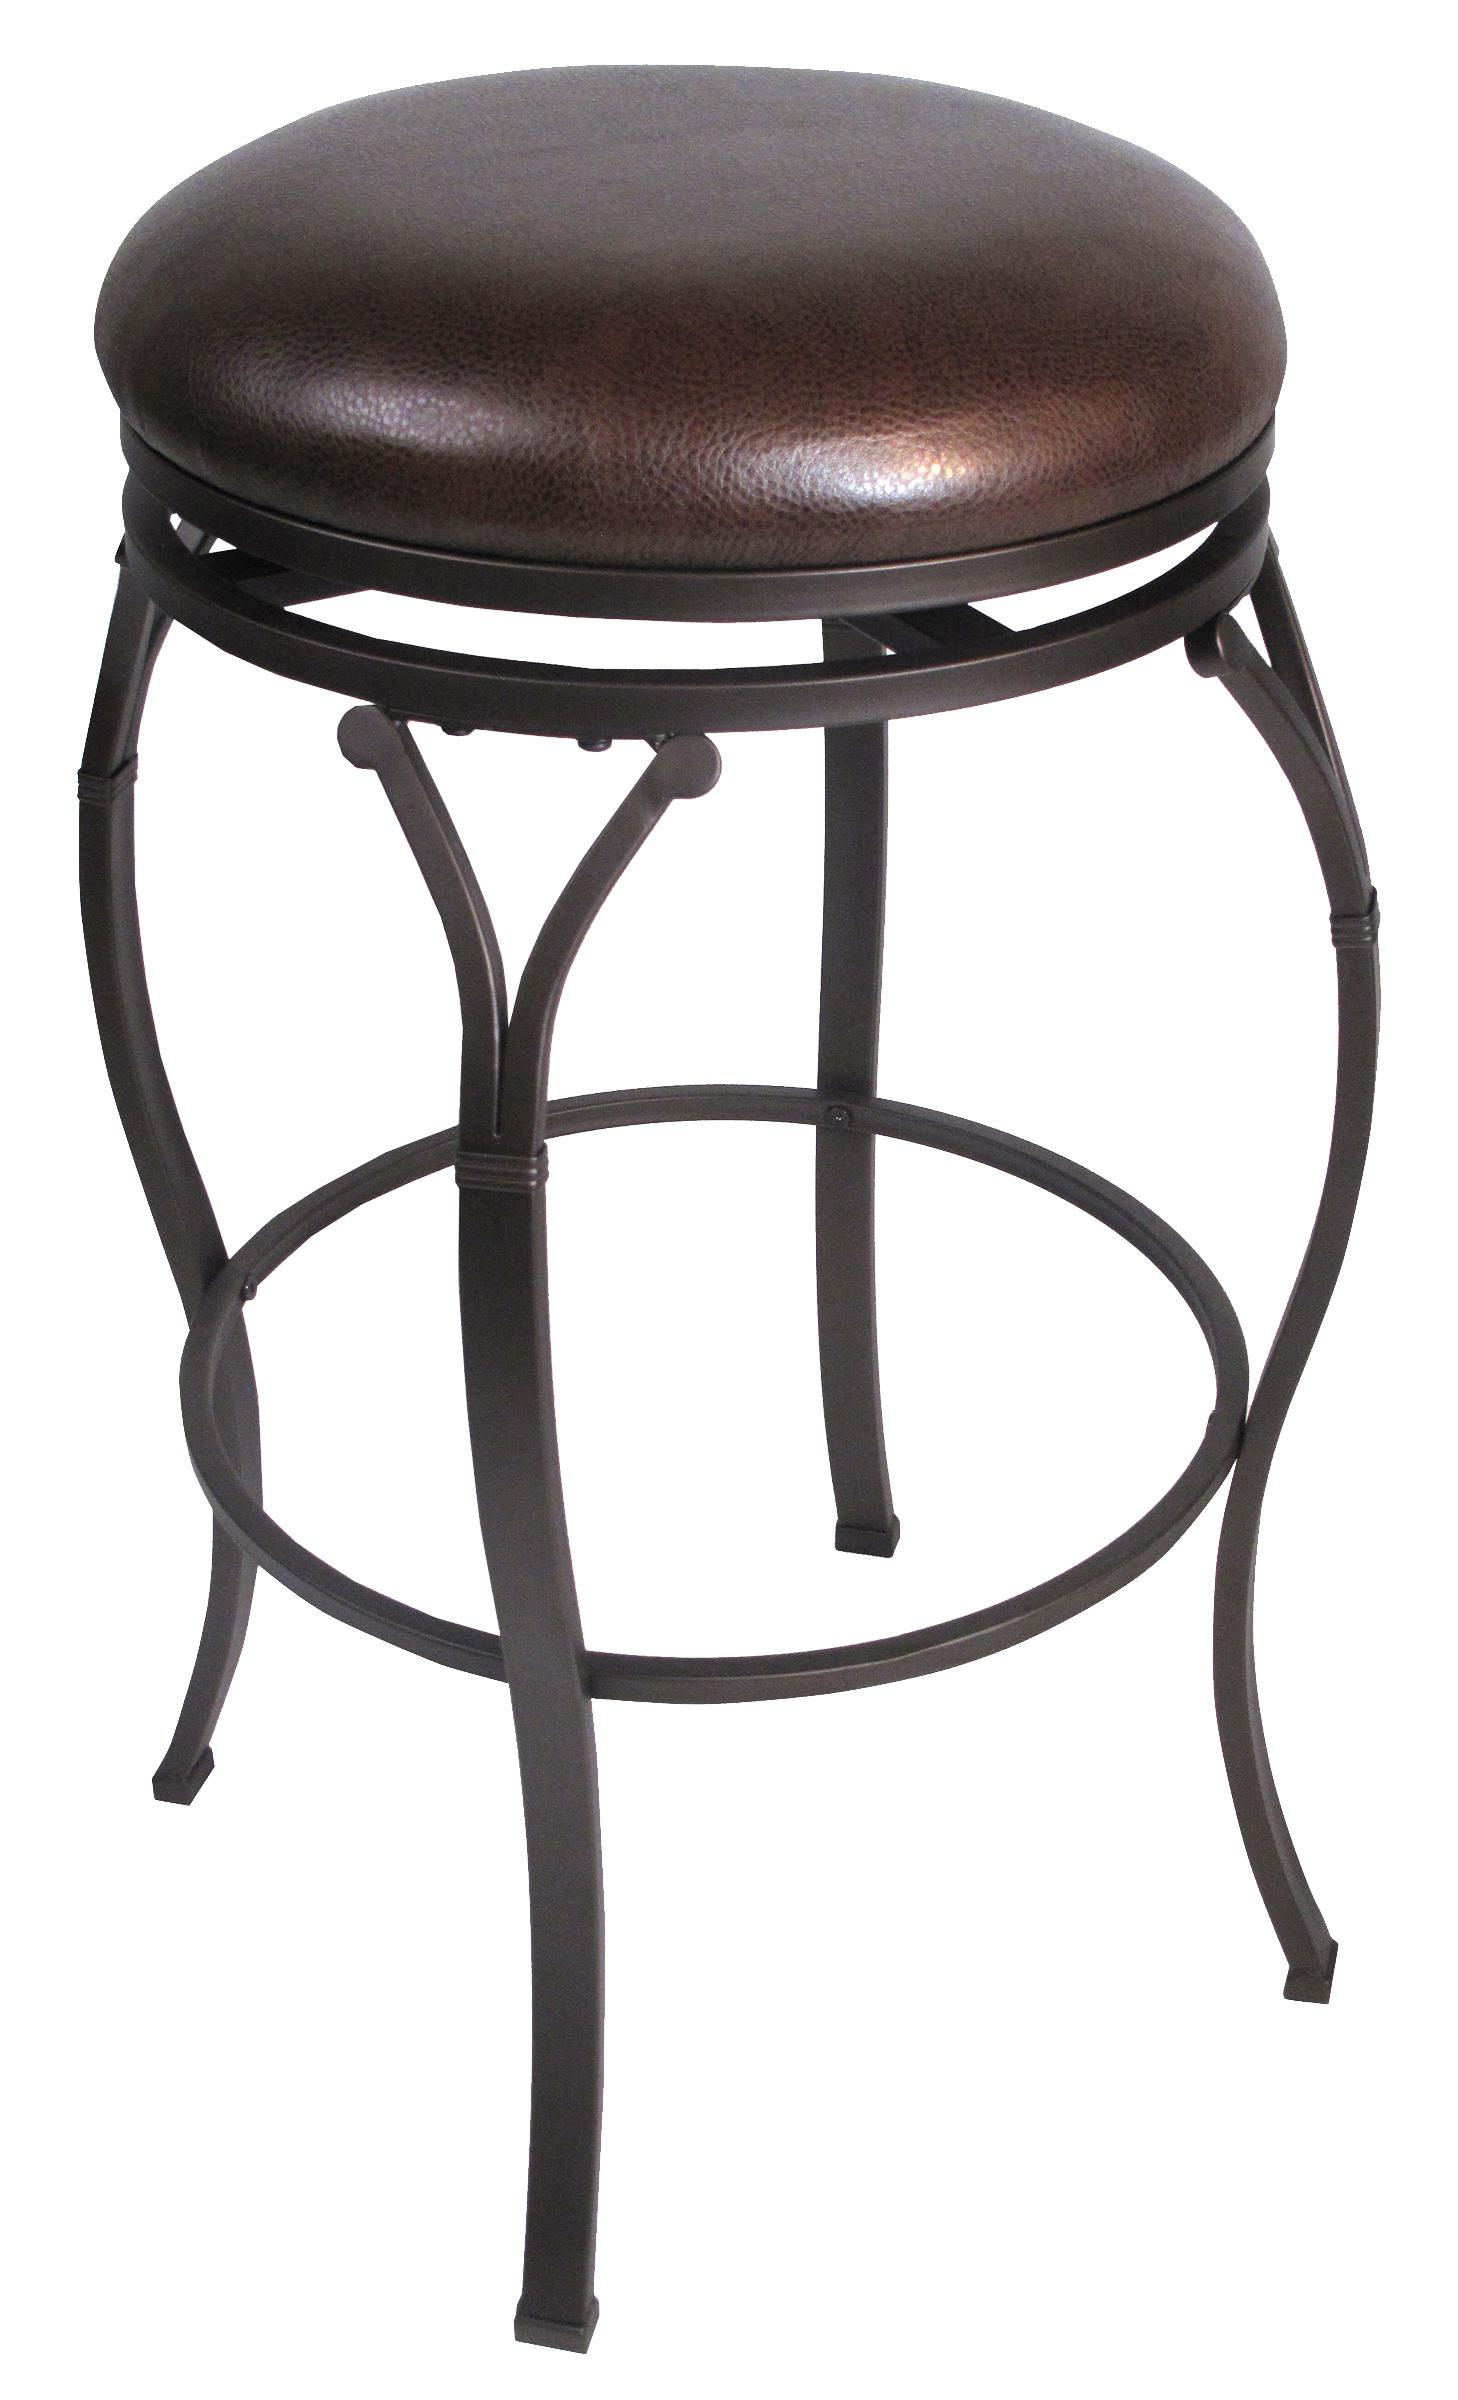 Hillsdale backless bar stools 24 5 lakeview backless for Backless bar stools